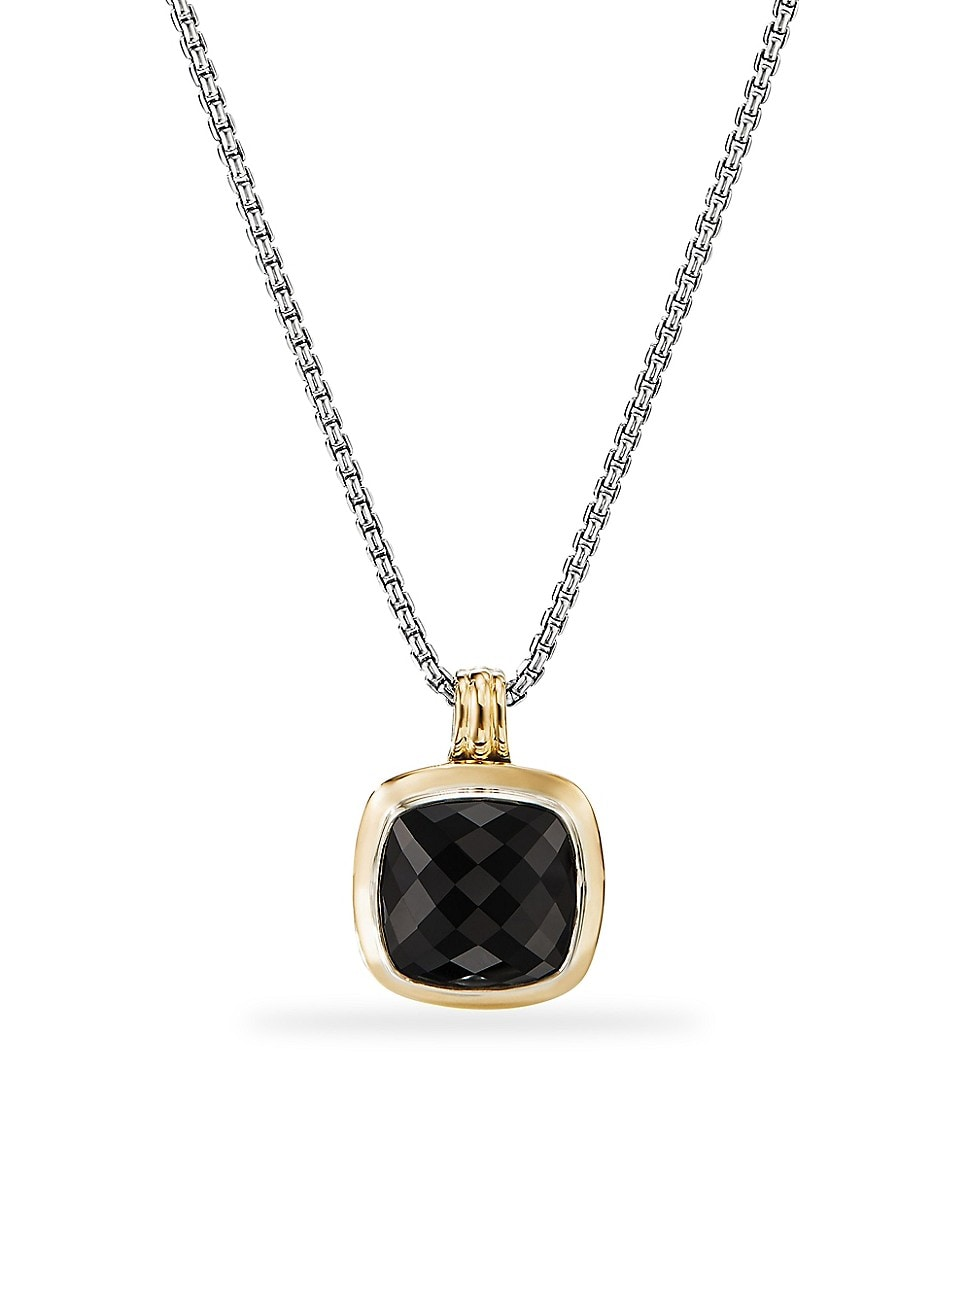 David Yurman WOMEN'S ALBION 18K YELLOW GOLD & BLACK ONYX PENDANT